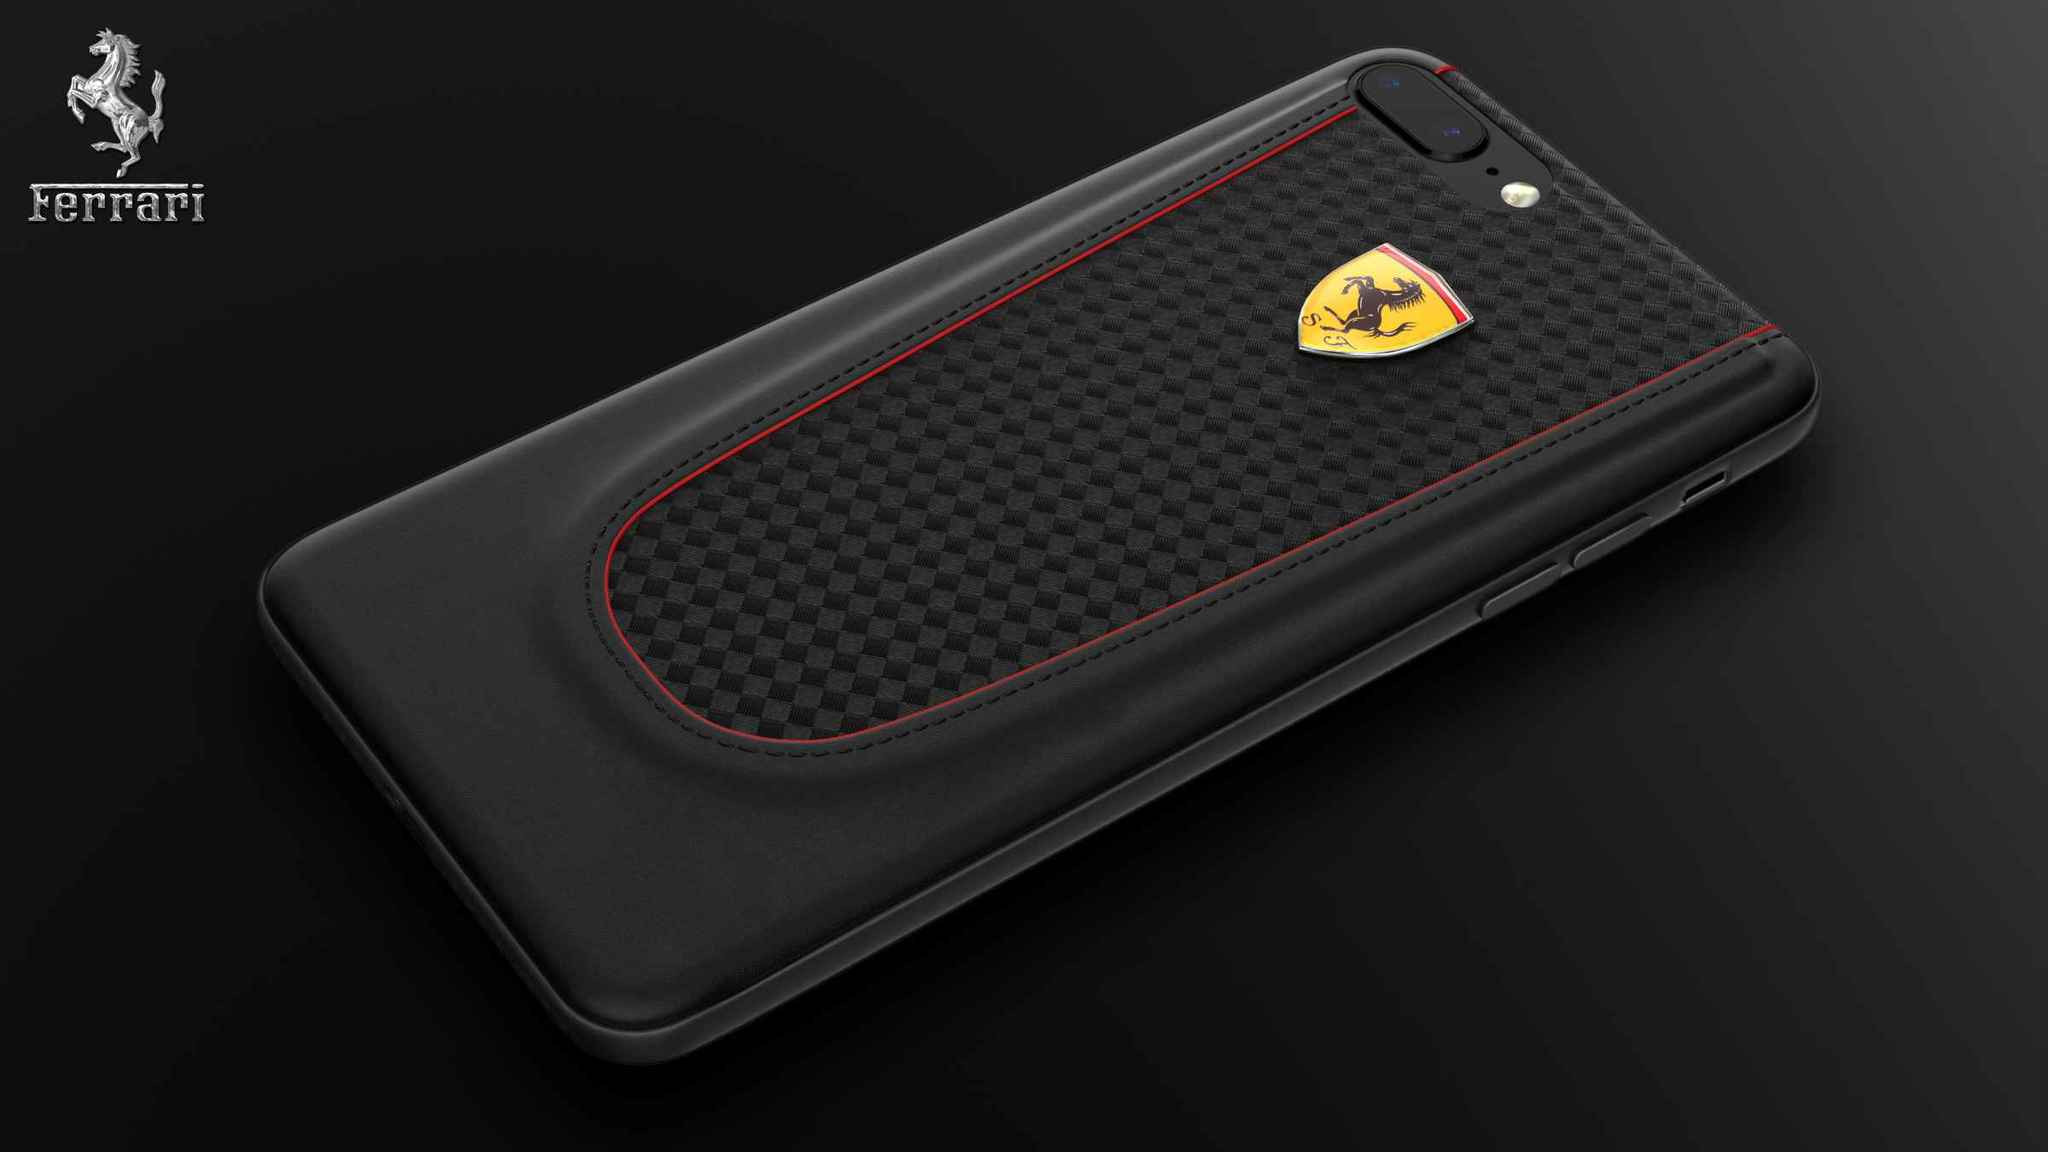 best loved e99e0 c7519 Ferrari ® Apple iPhone 7 Plus Official California T Series Double Stitched  Dual-Material PU Leather Back Cover